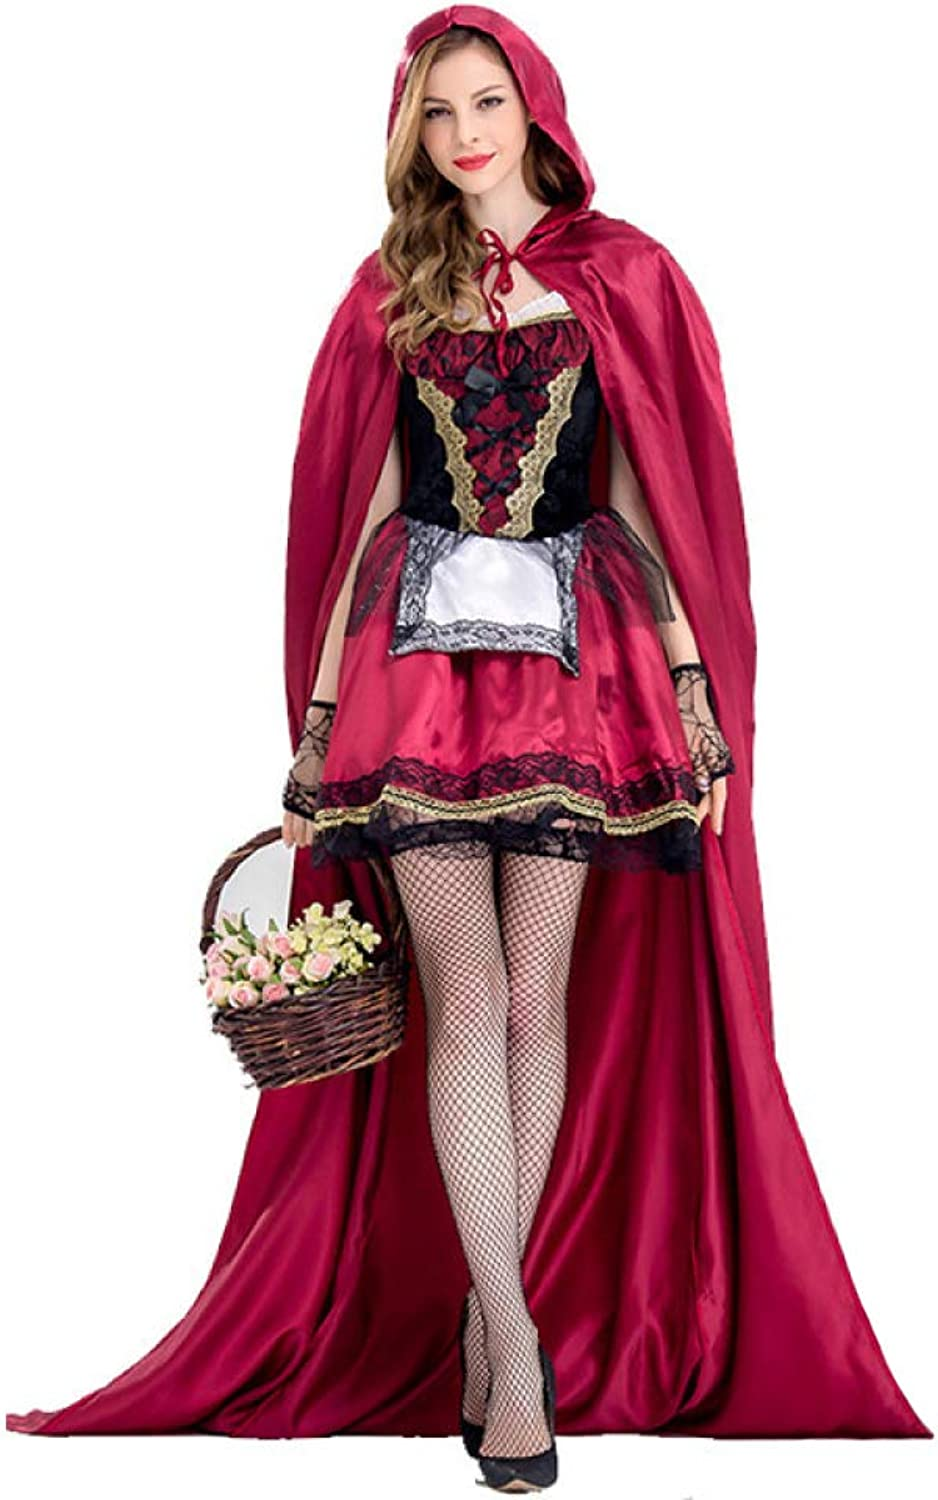 CVCCV Halloween Little Red Riding Hood Costume Nightclub Queen Costume Adult Cosplay Party Dress Polyester Fabric (Purple Red)